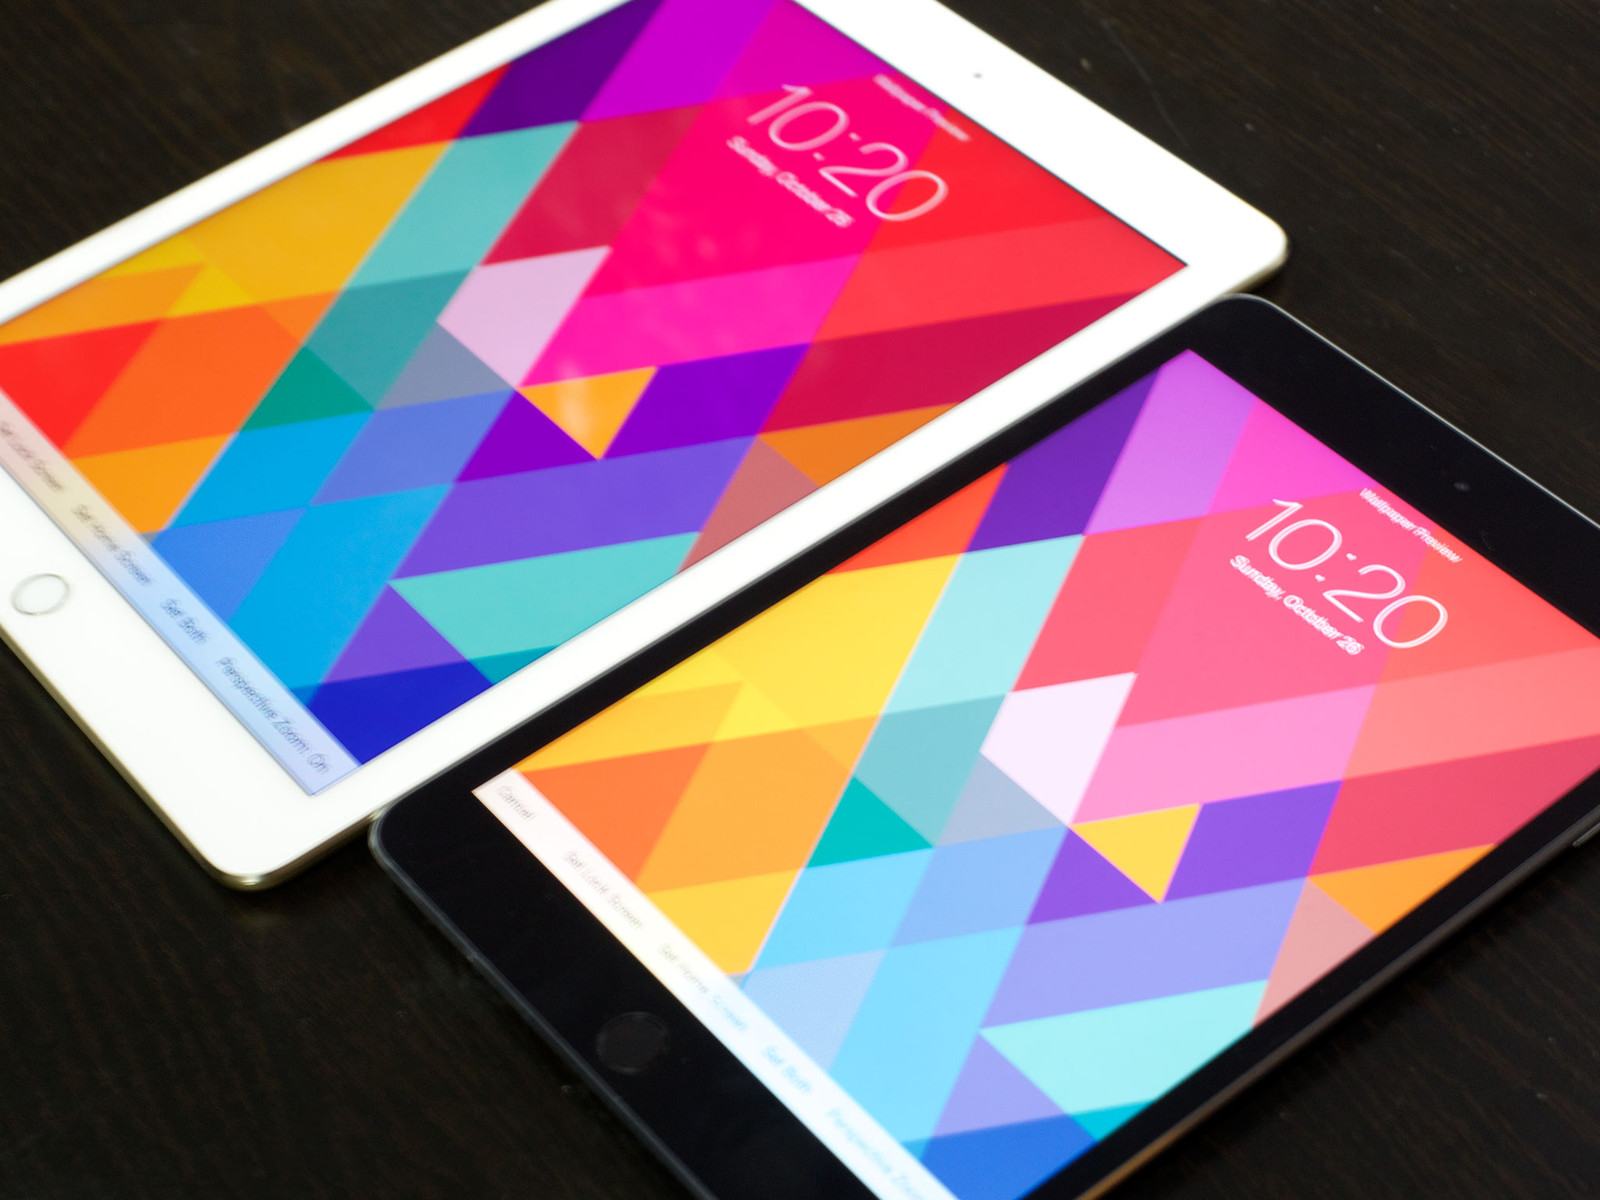 iPad Air 2 vs. iPad mini 3 color gamut